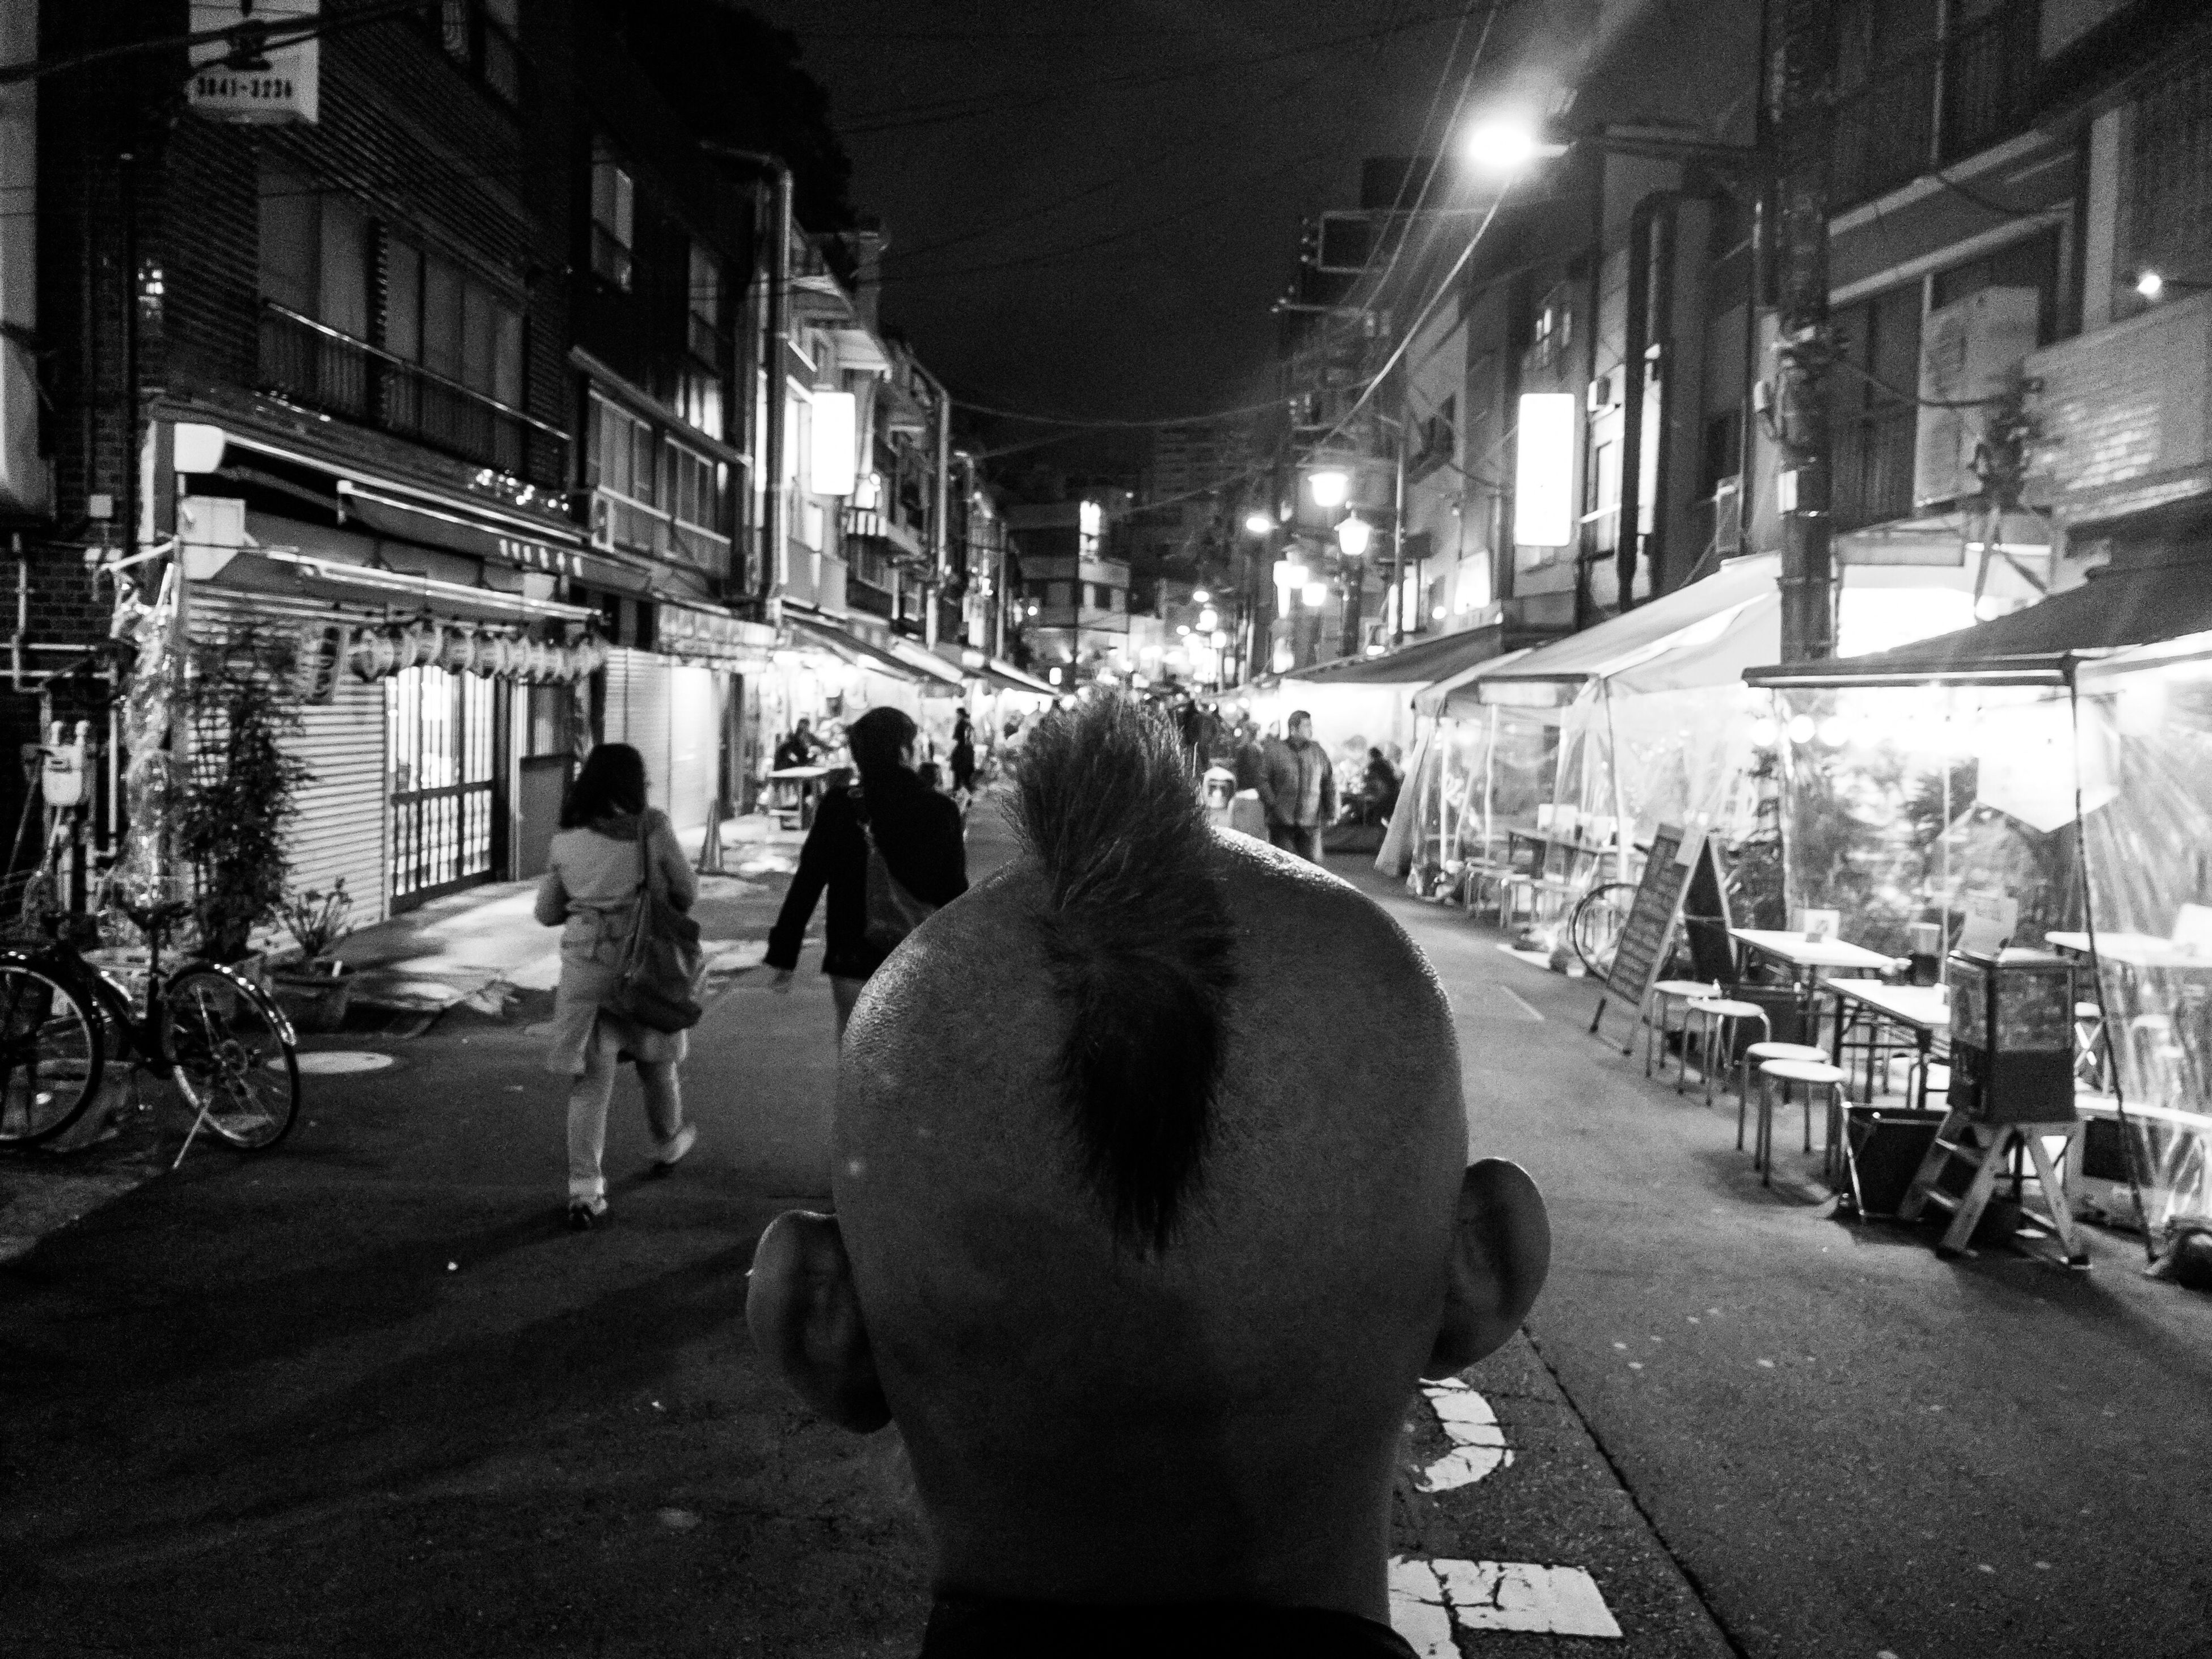 illuminated, city, only men, night, rear view, people, adults only, men, adult, real people, one person, outdoors, architecture, one man only, sky